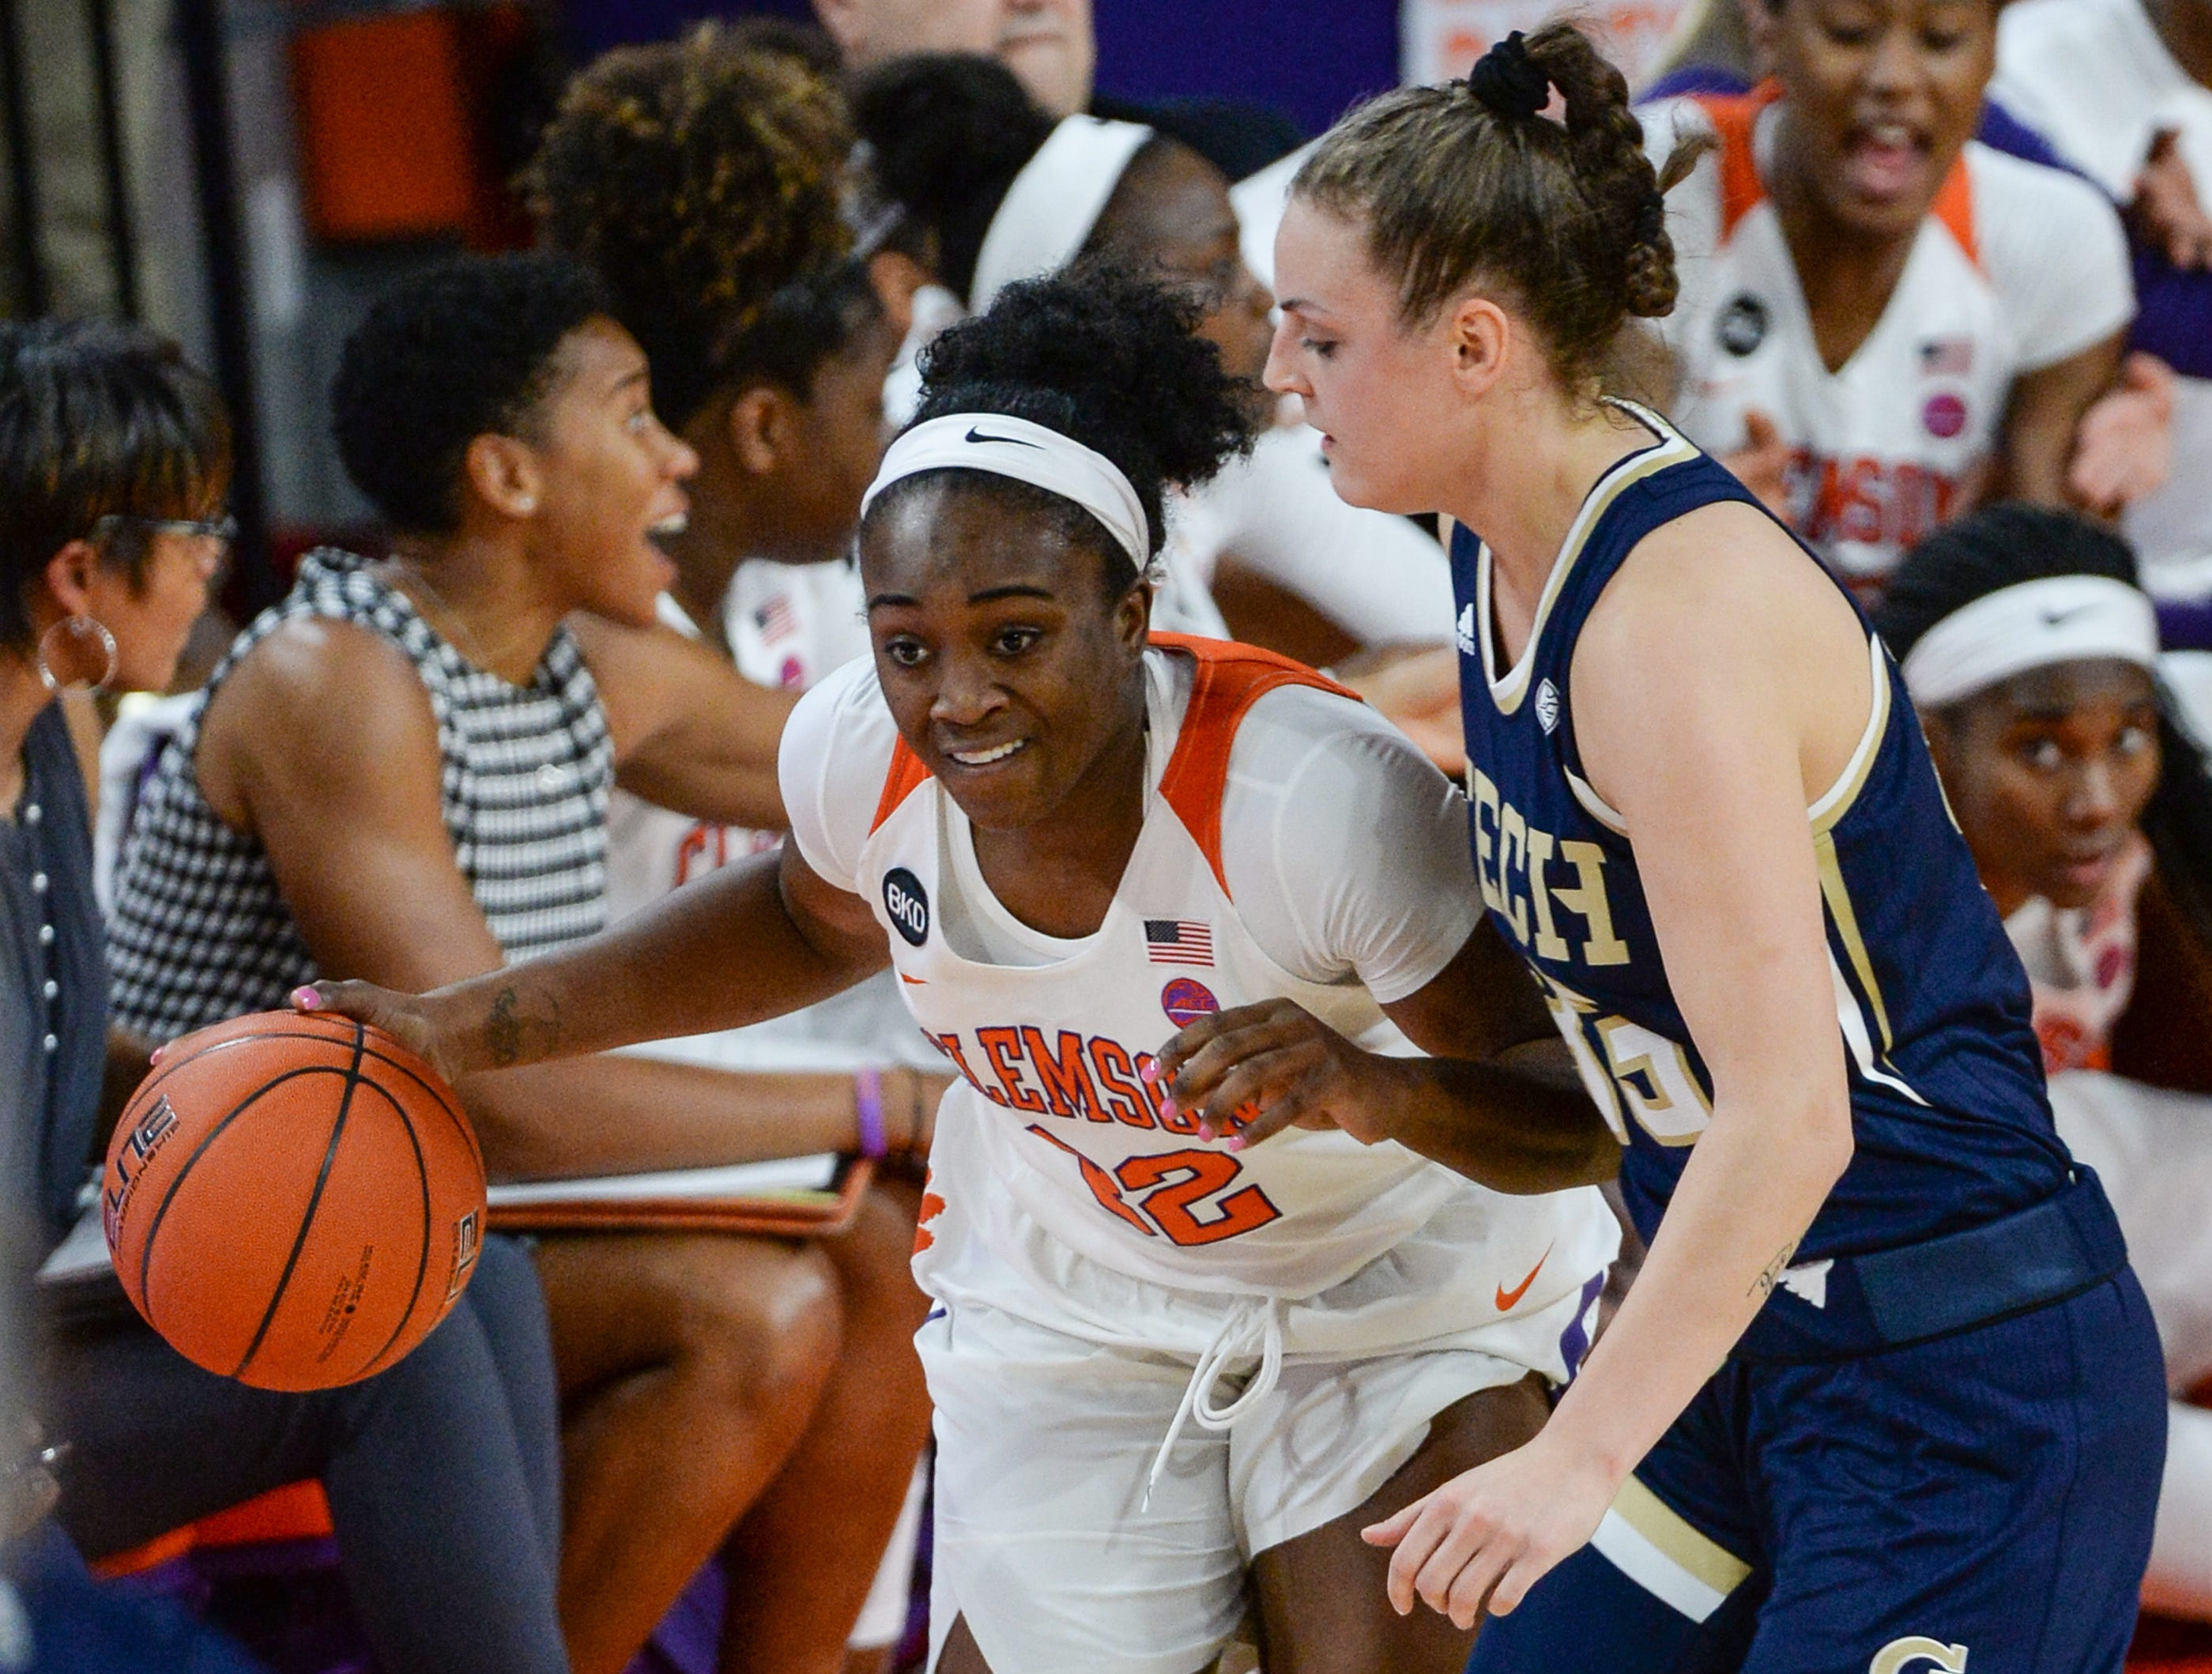 Clemson guard Aliyah Collier(12) dribbles near Georgia Tech guard Frescesca Pan(33) during the first quarter at Littlejohn Coliseum in Clemson Thursday, January 17, 2019.